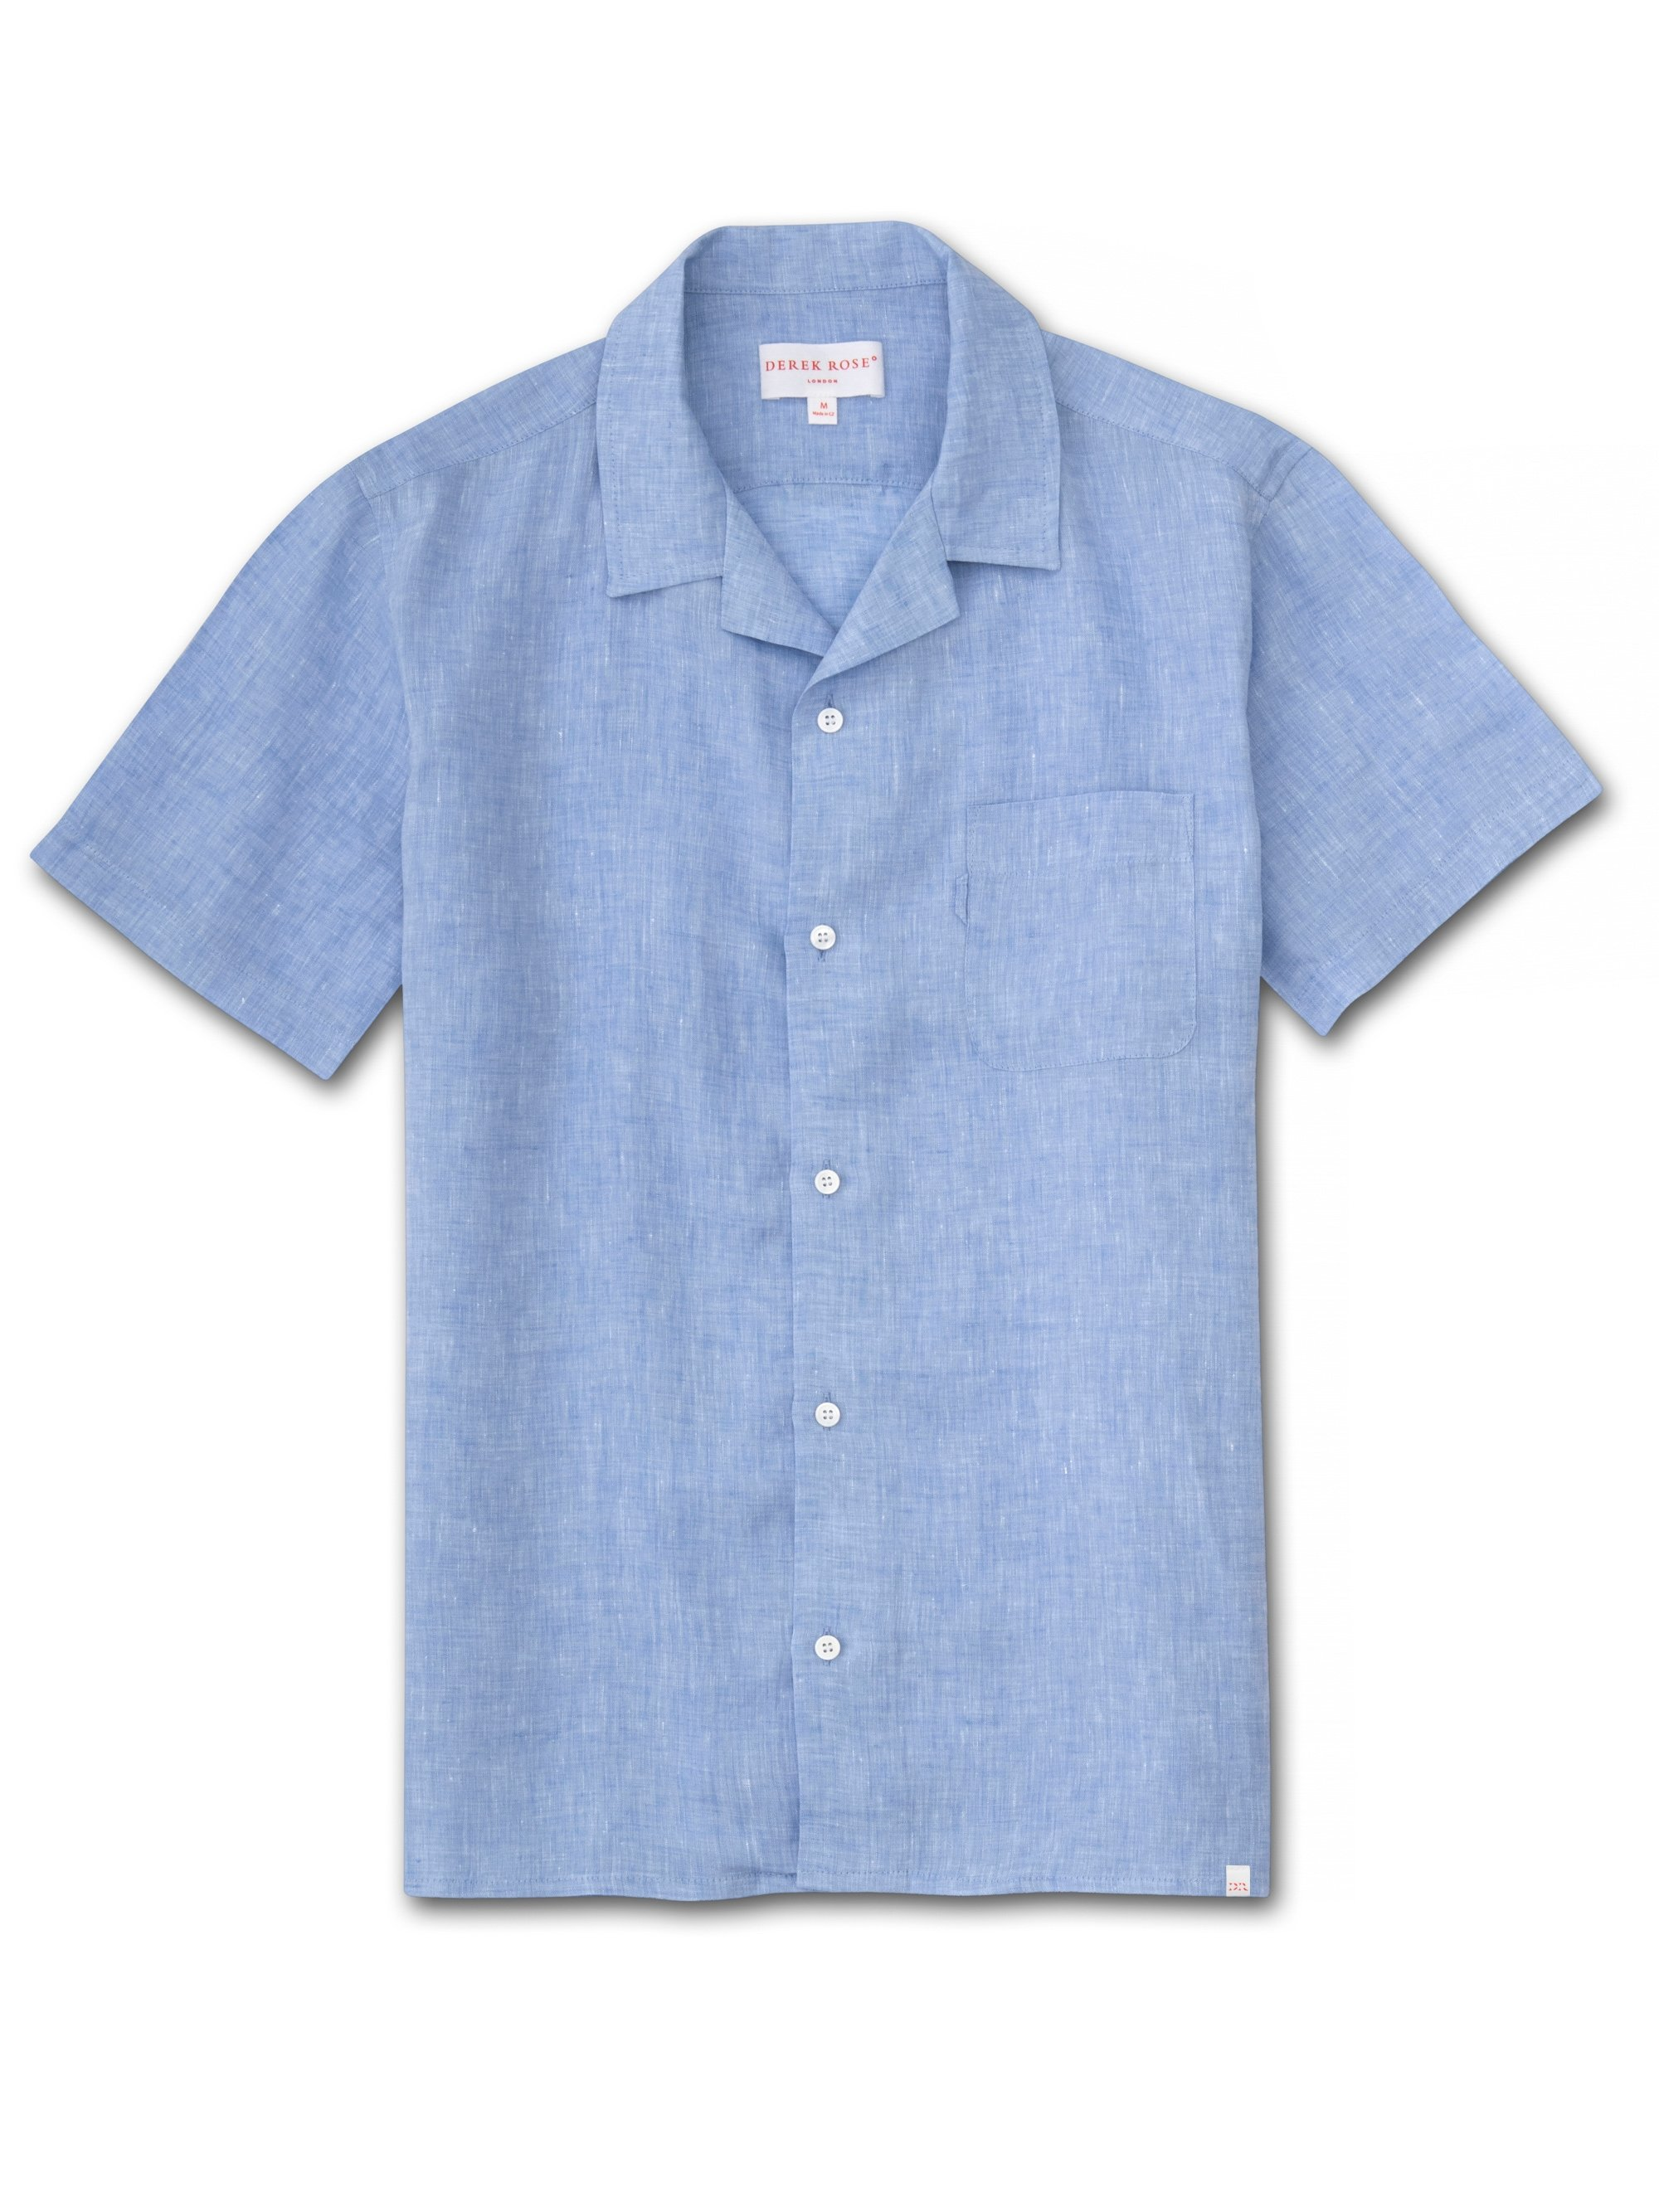 Men's Linen Short Sleeve Shirt Monaco Pure Linen Blue